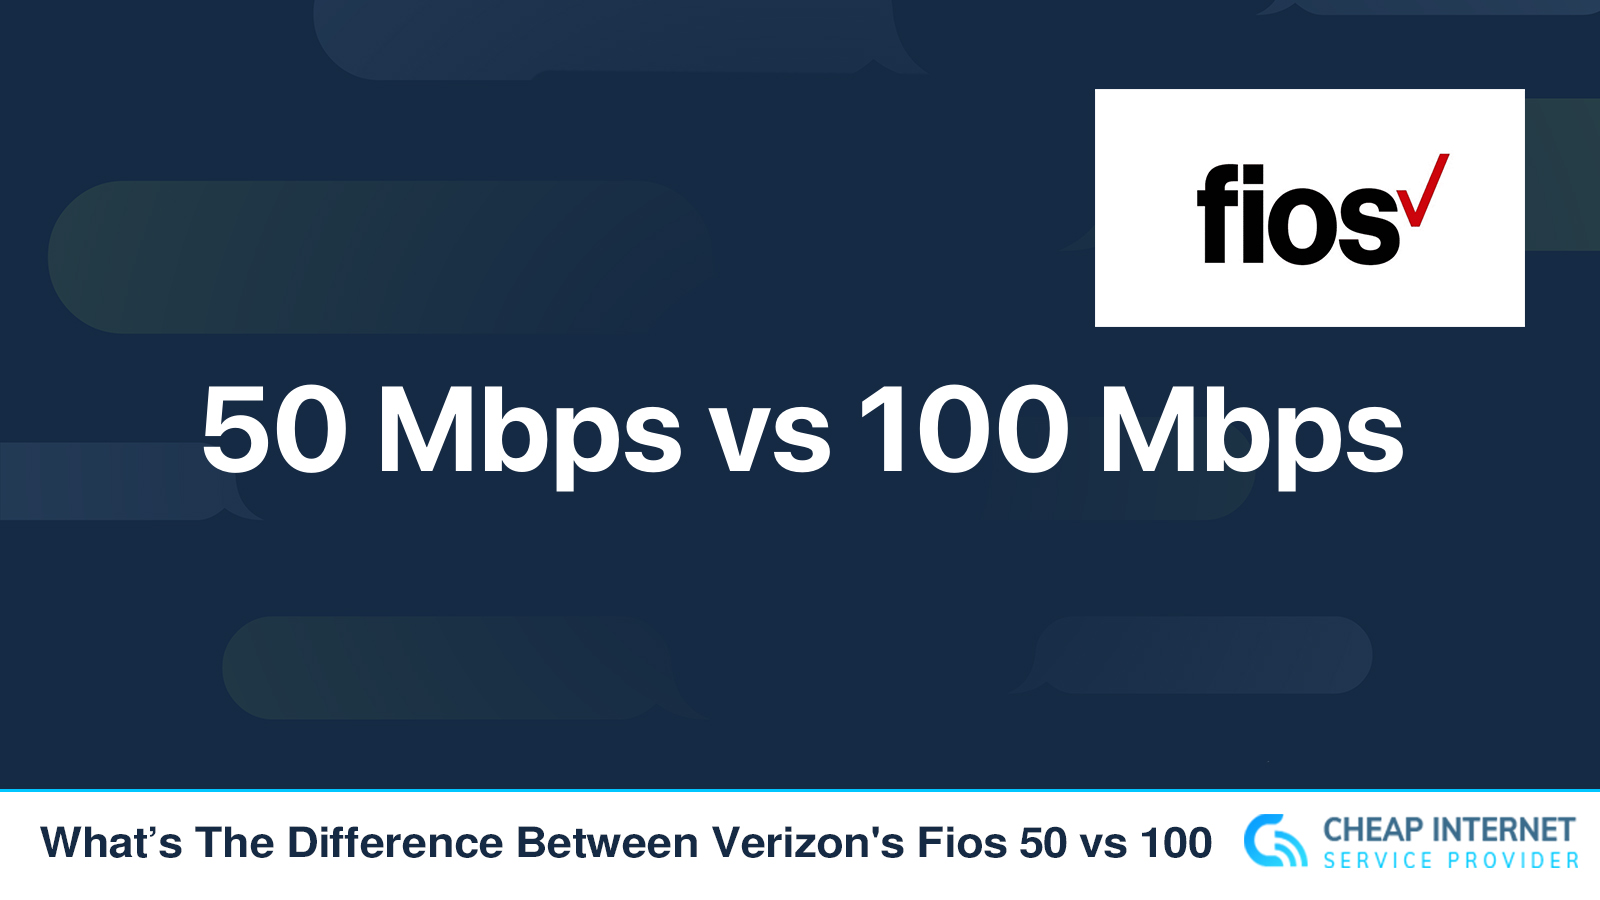 What's The Difference Between Verizon's Fios 50 vs 100